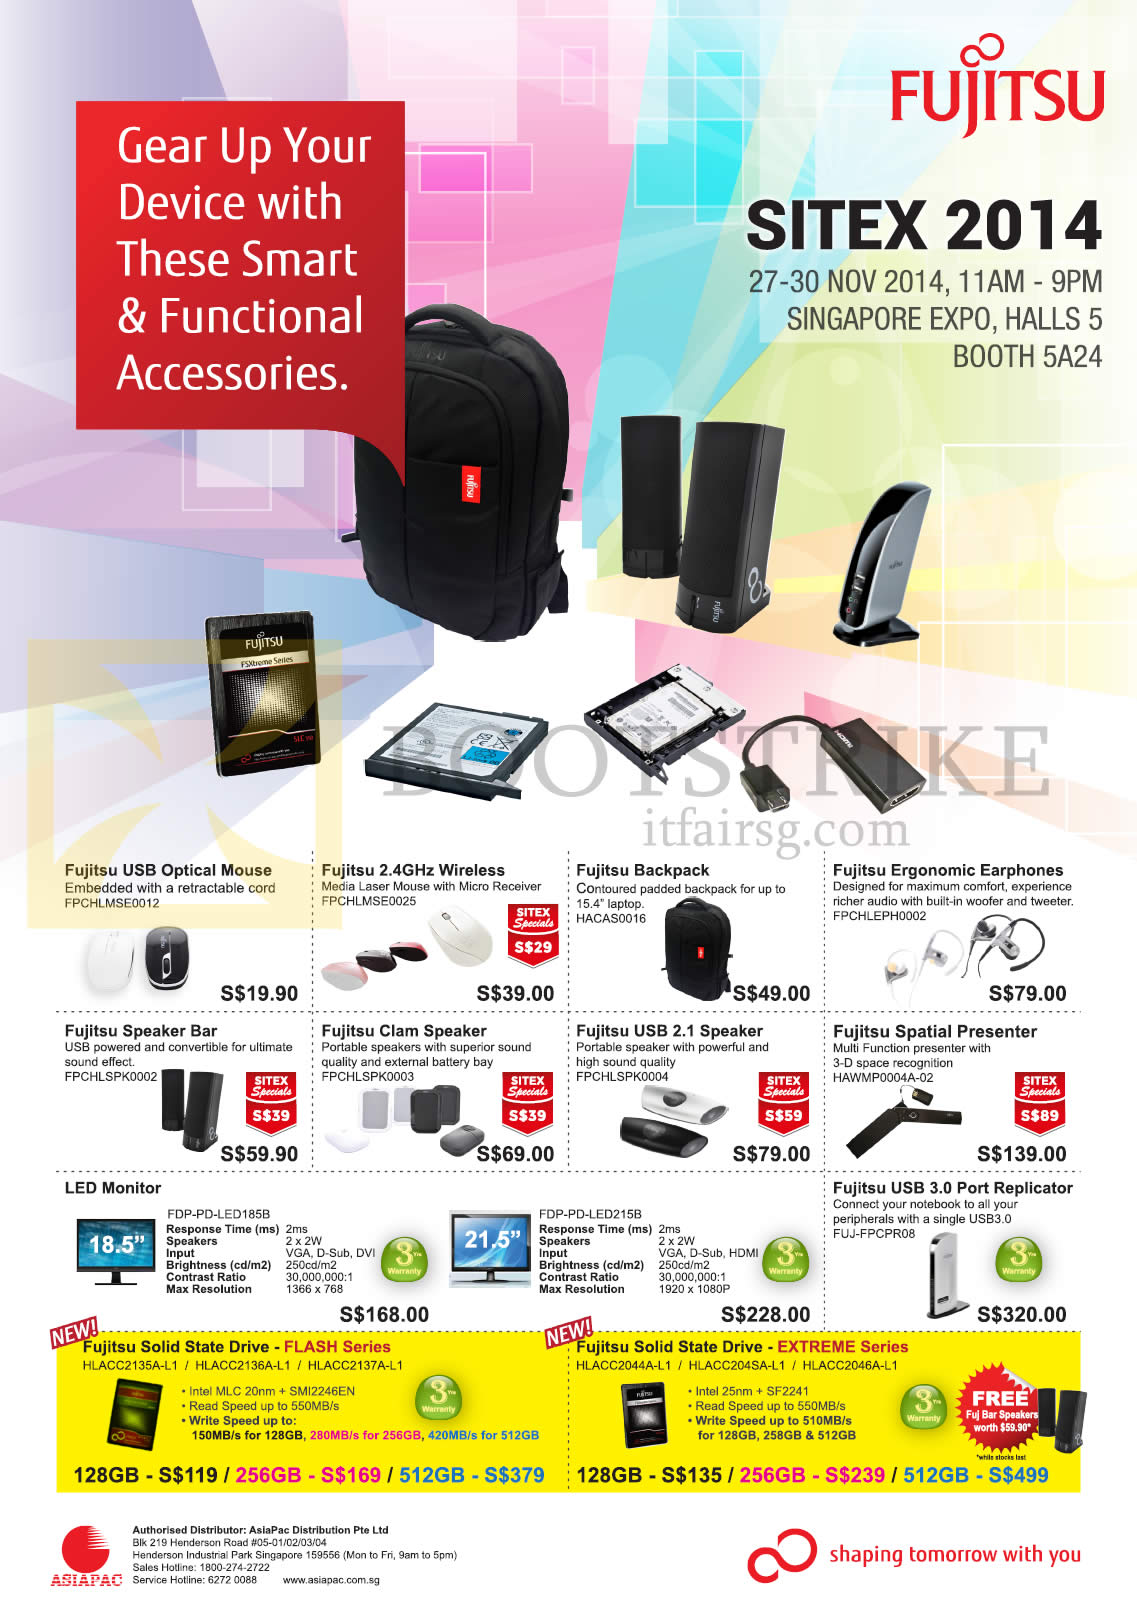 SITEX 2014 price list image brochure of Fujitsu Accessories Mouse, Speaker, Backpack, Earphones, USB Port Replicator, LED Monitor